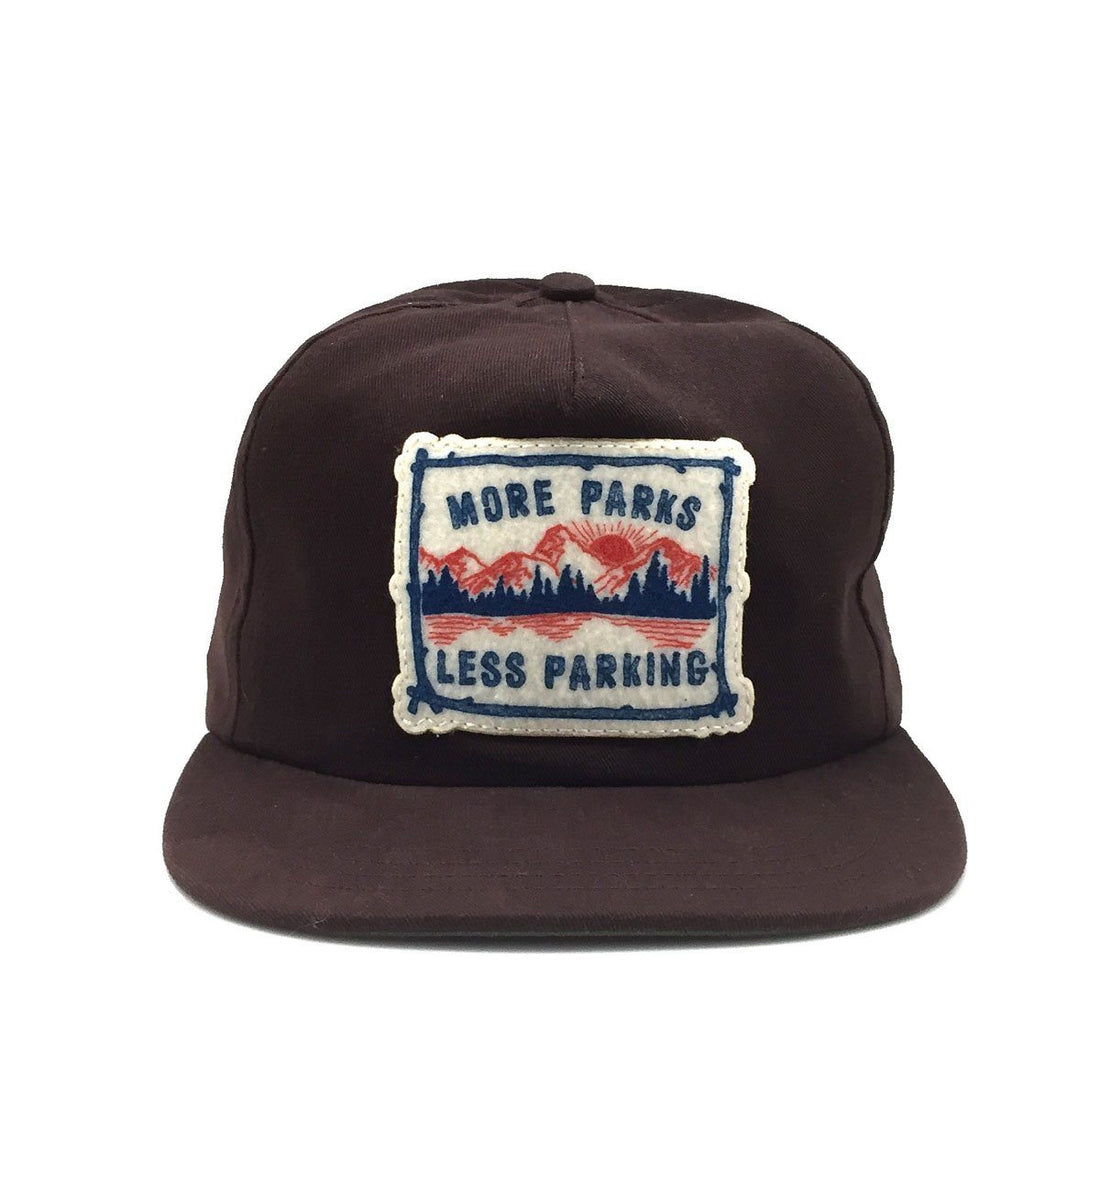 The Ampal Creative More Parks III Strapback - Brown - Headwear - Iron and Resin